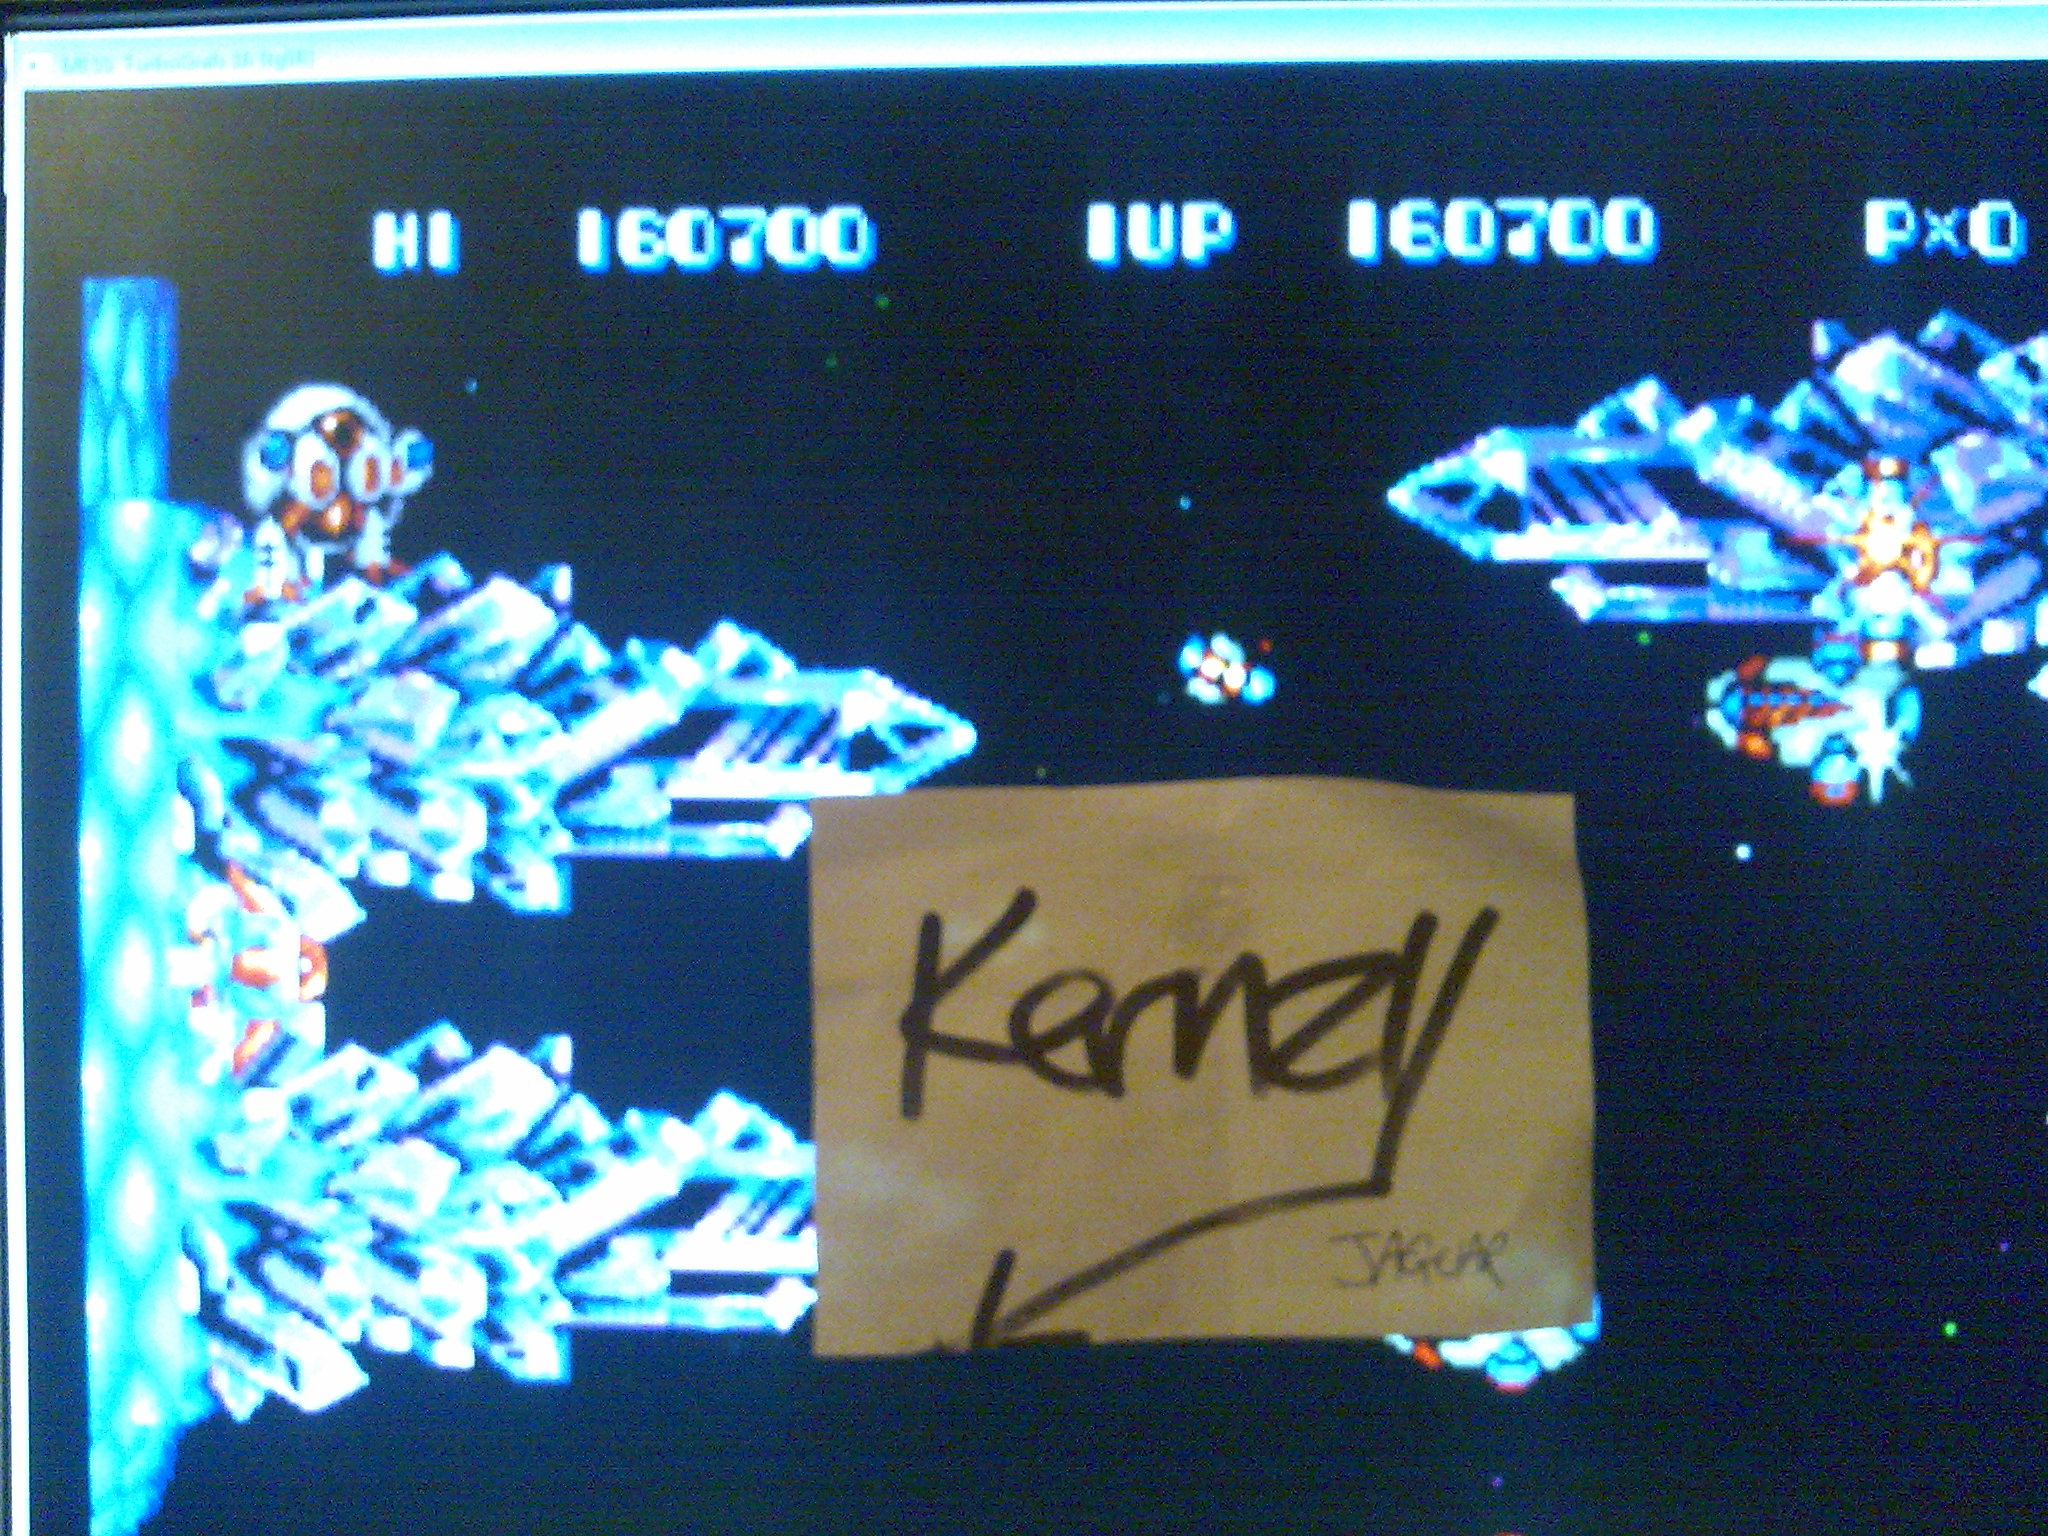 kernzy: Side Arms (TurboGrafx-16/PC Engine Emulated) 160,700 points on 2014-10-11 12:50:31